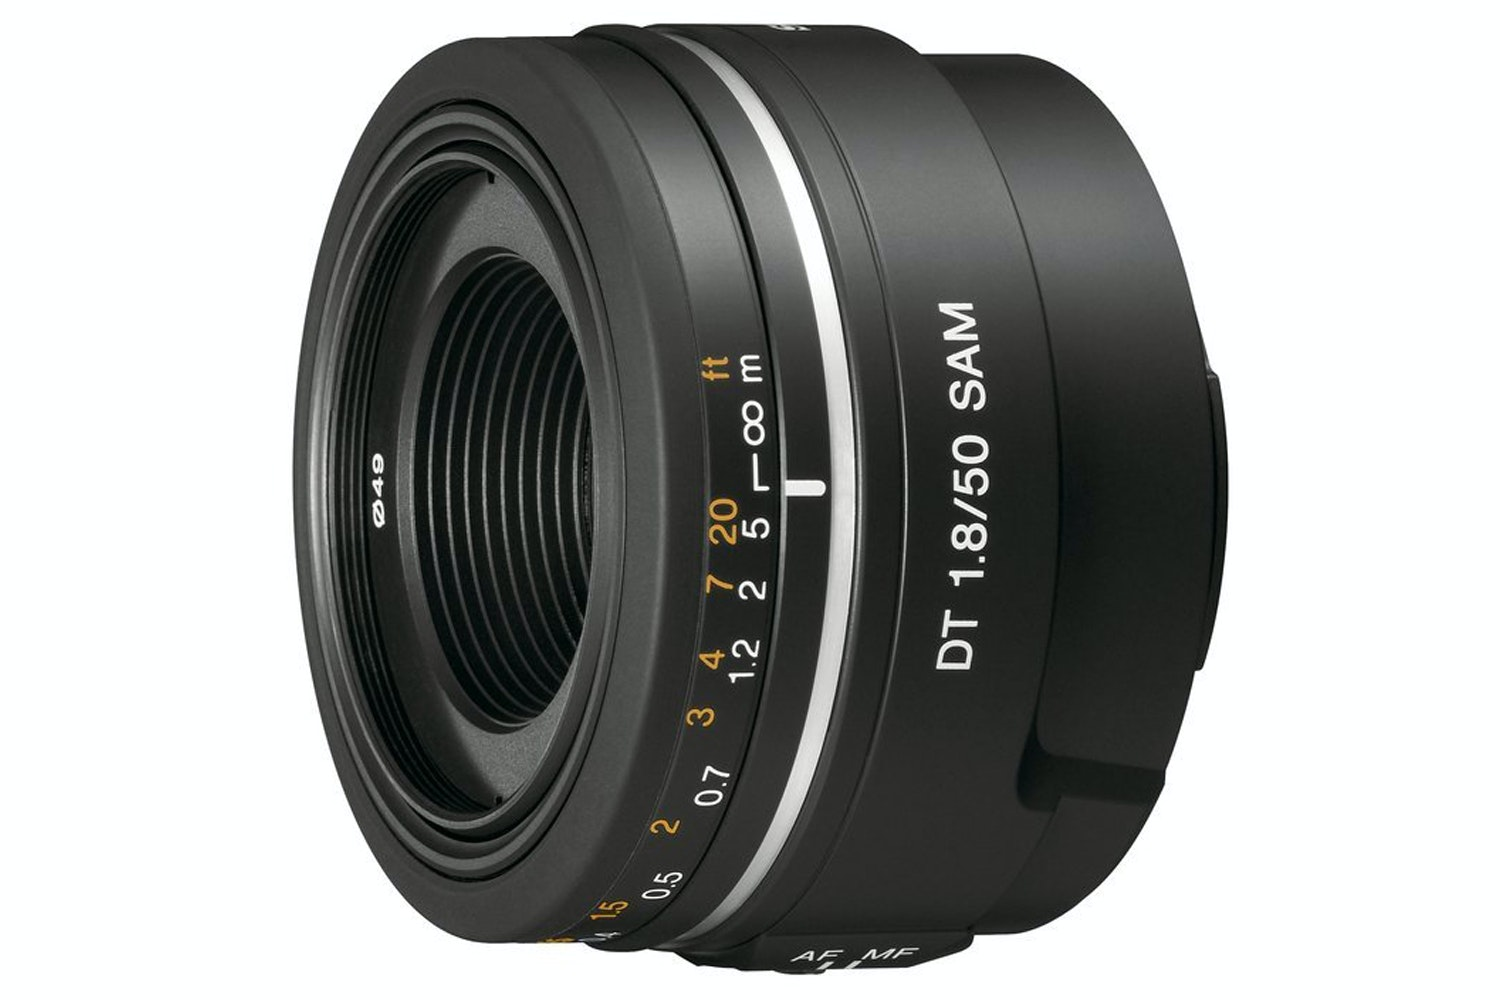 Sony A-mount 50mm f1.8 lens